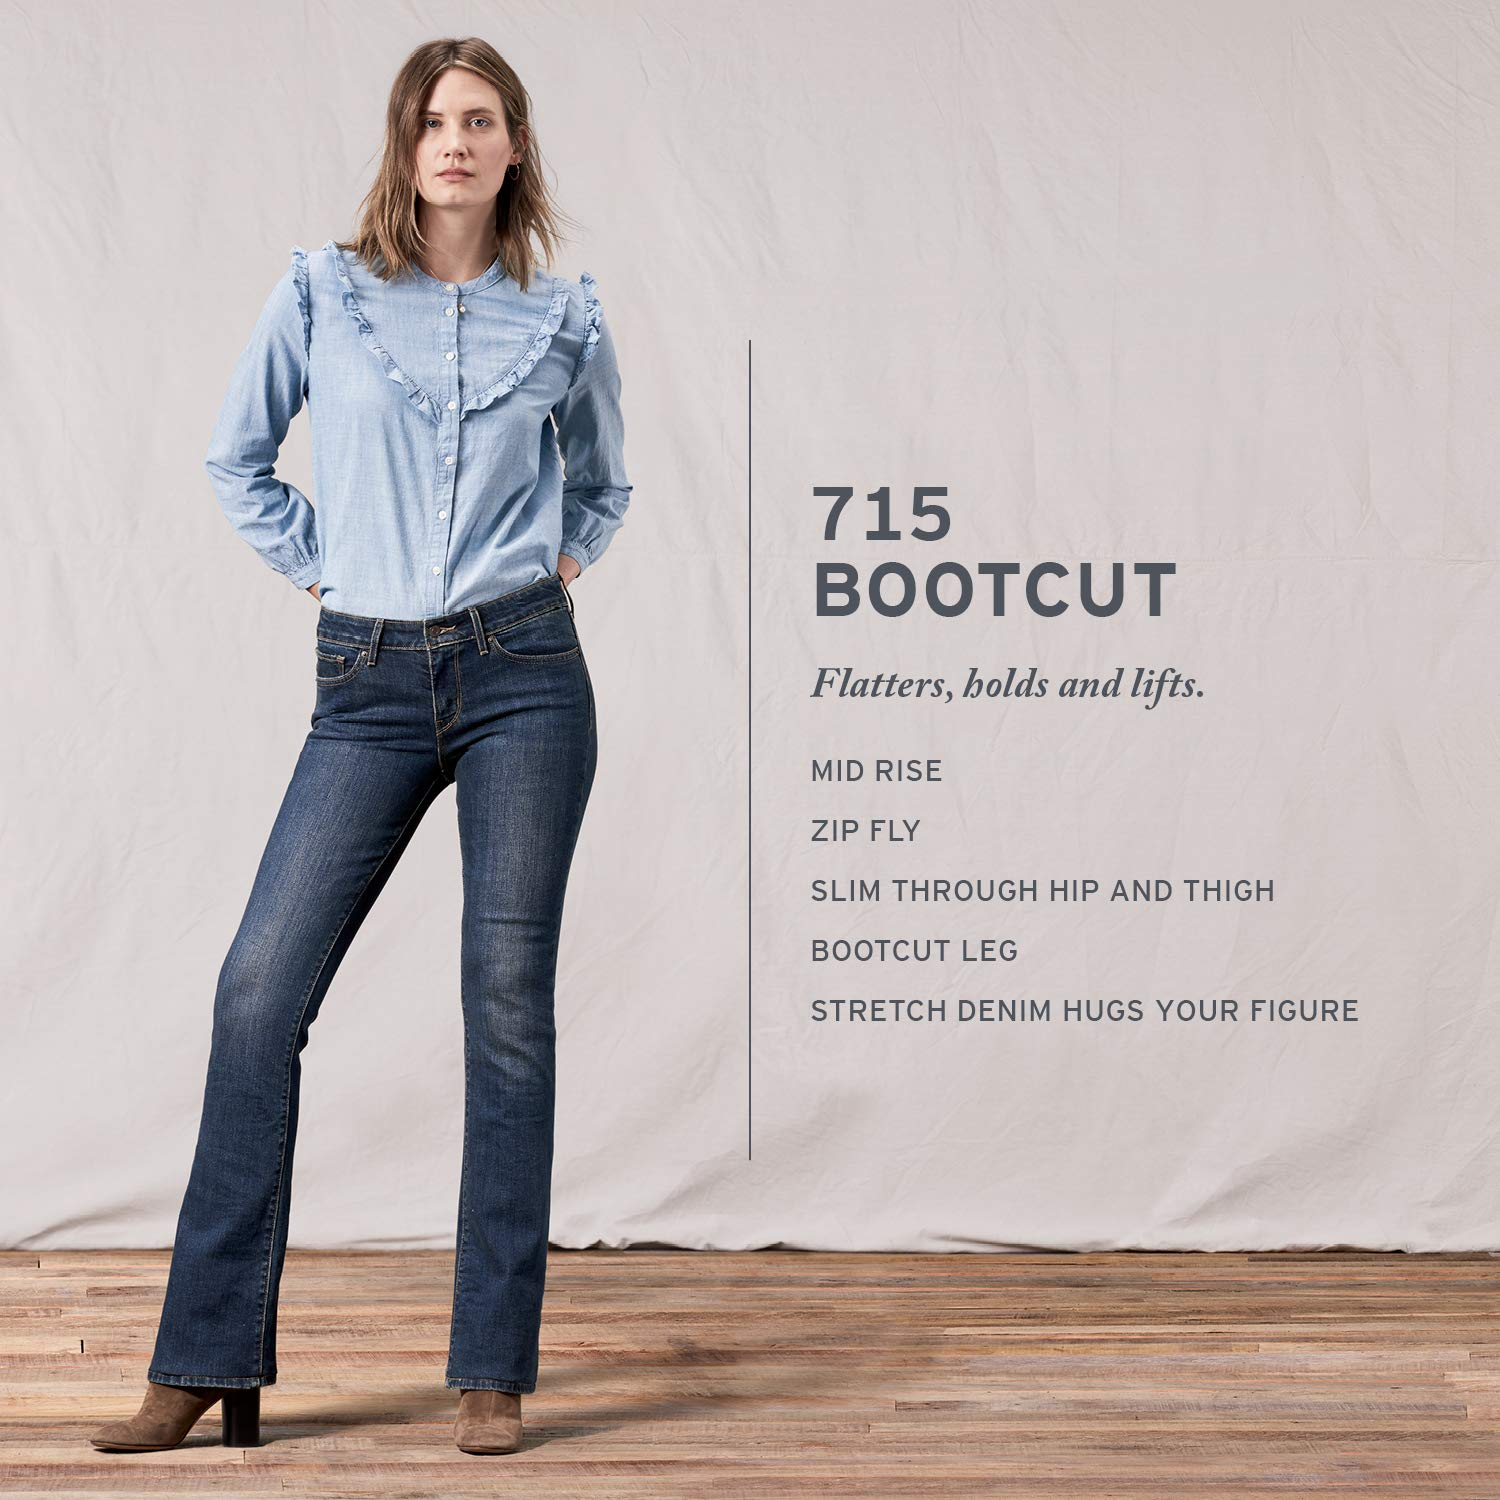 036f97578b Levi s 715 Bootcut Jeans para Mujer